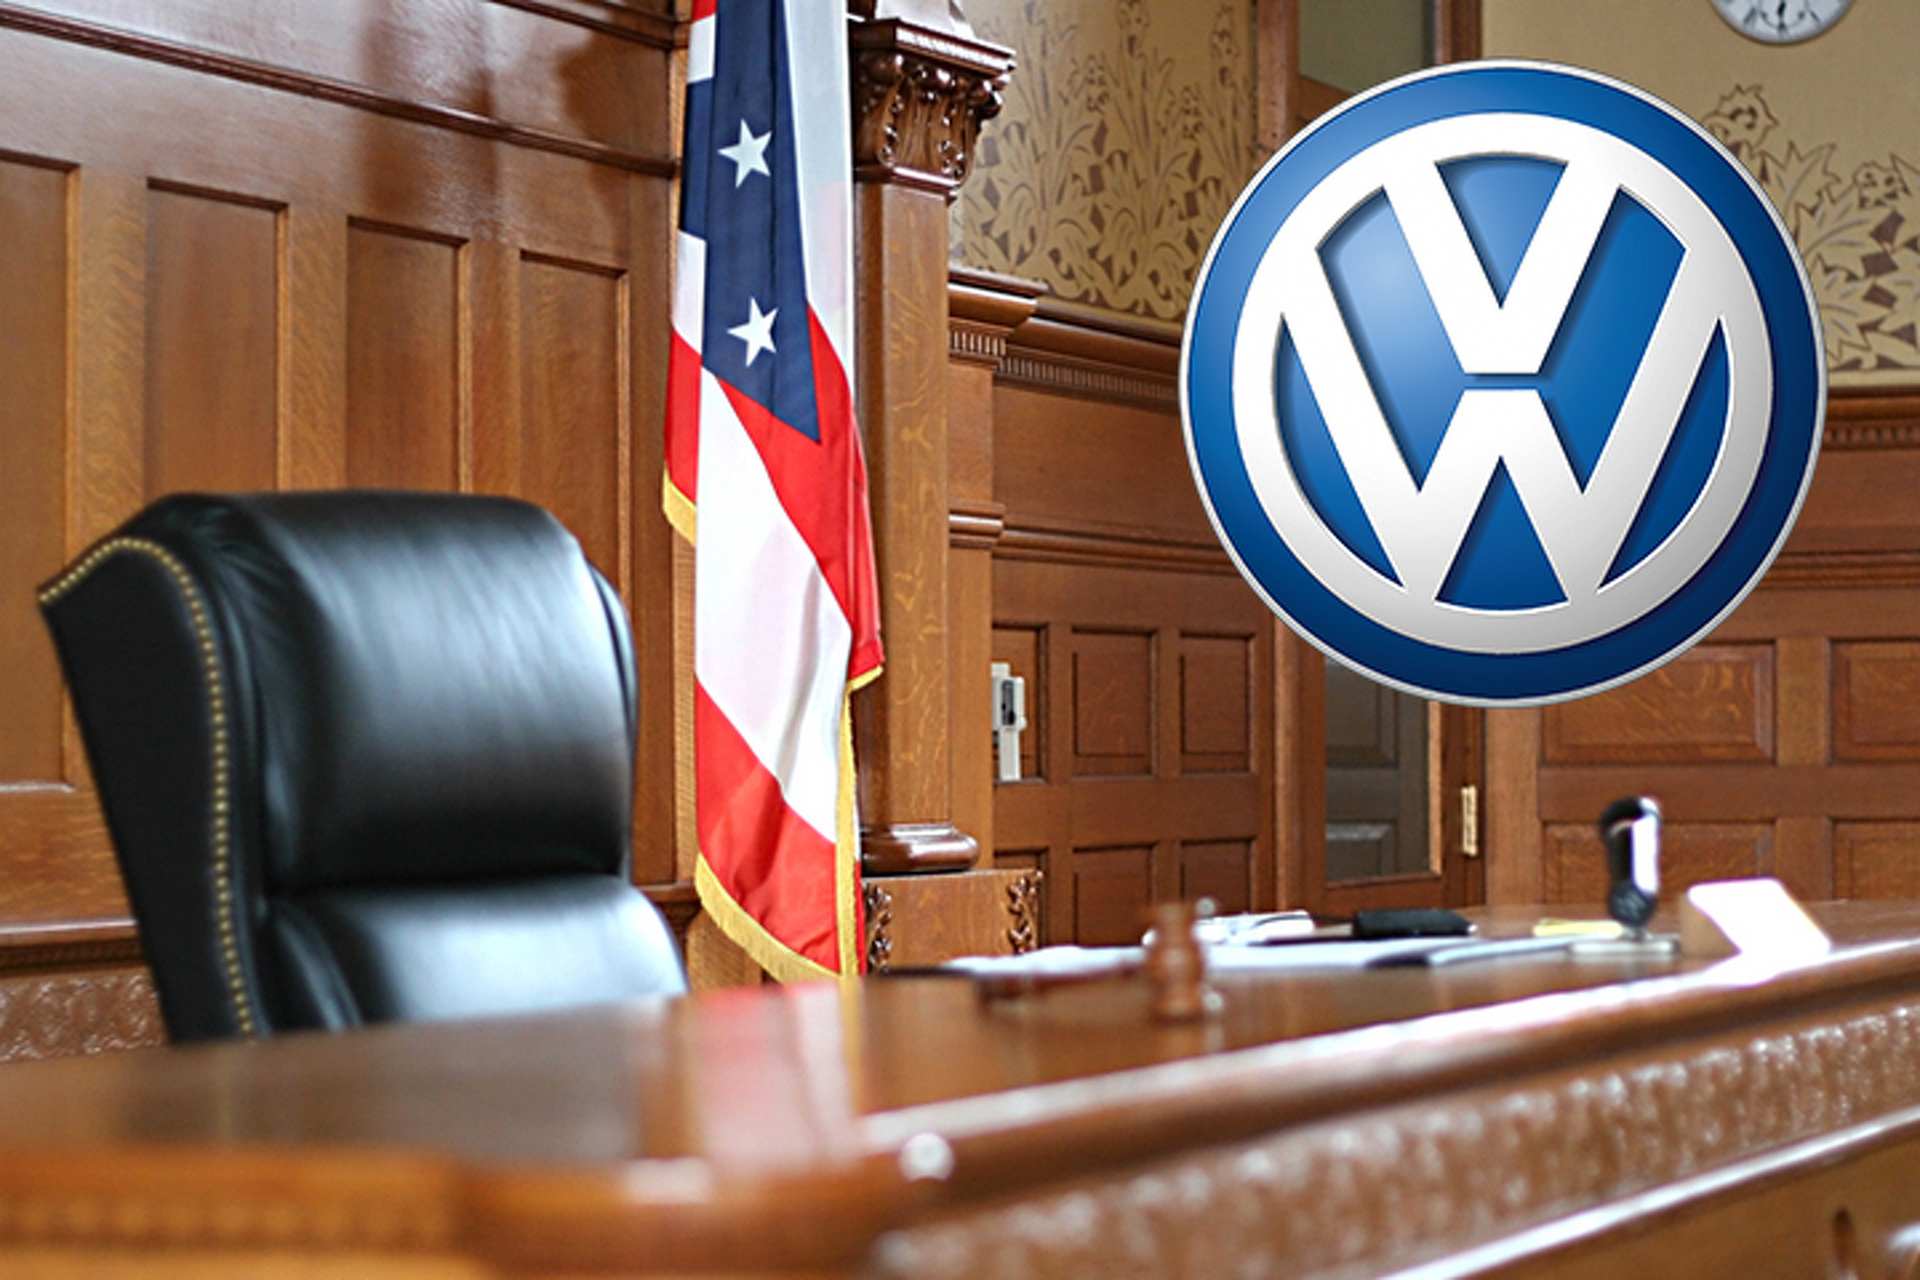 Vw Class Action Lawsuit >> What to Know About the Class Action Lawsuit Against Volkswagen for Diesel Emissions